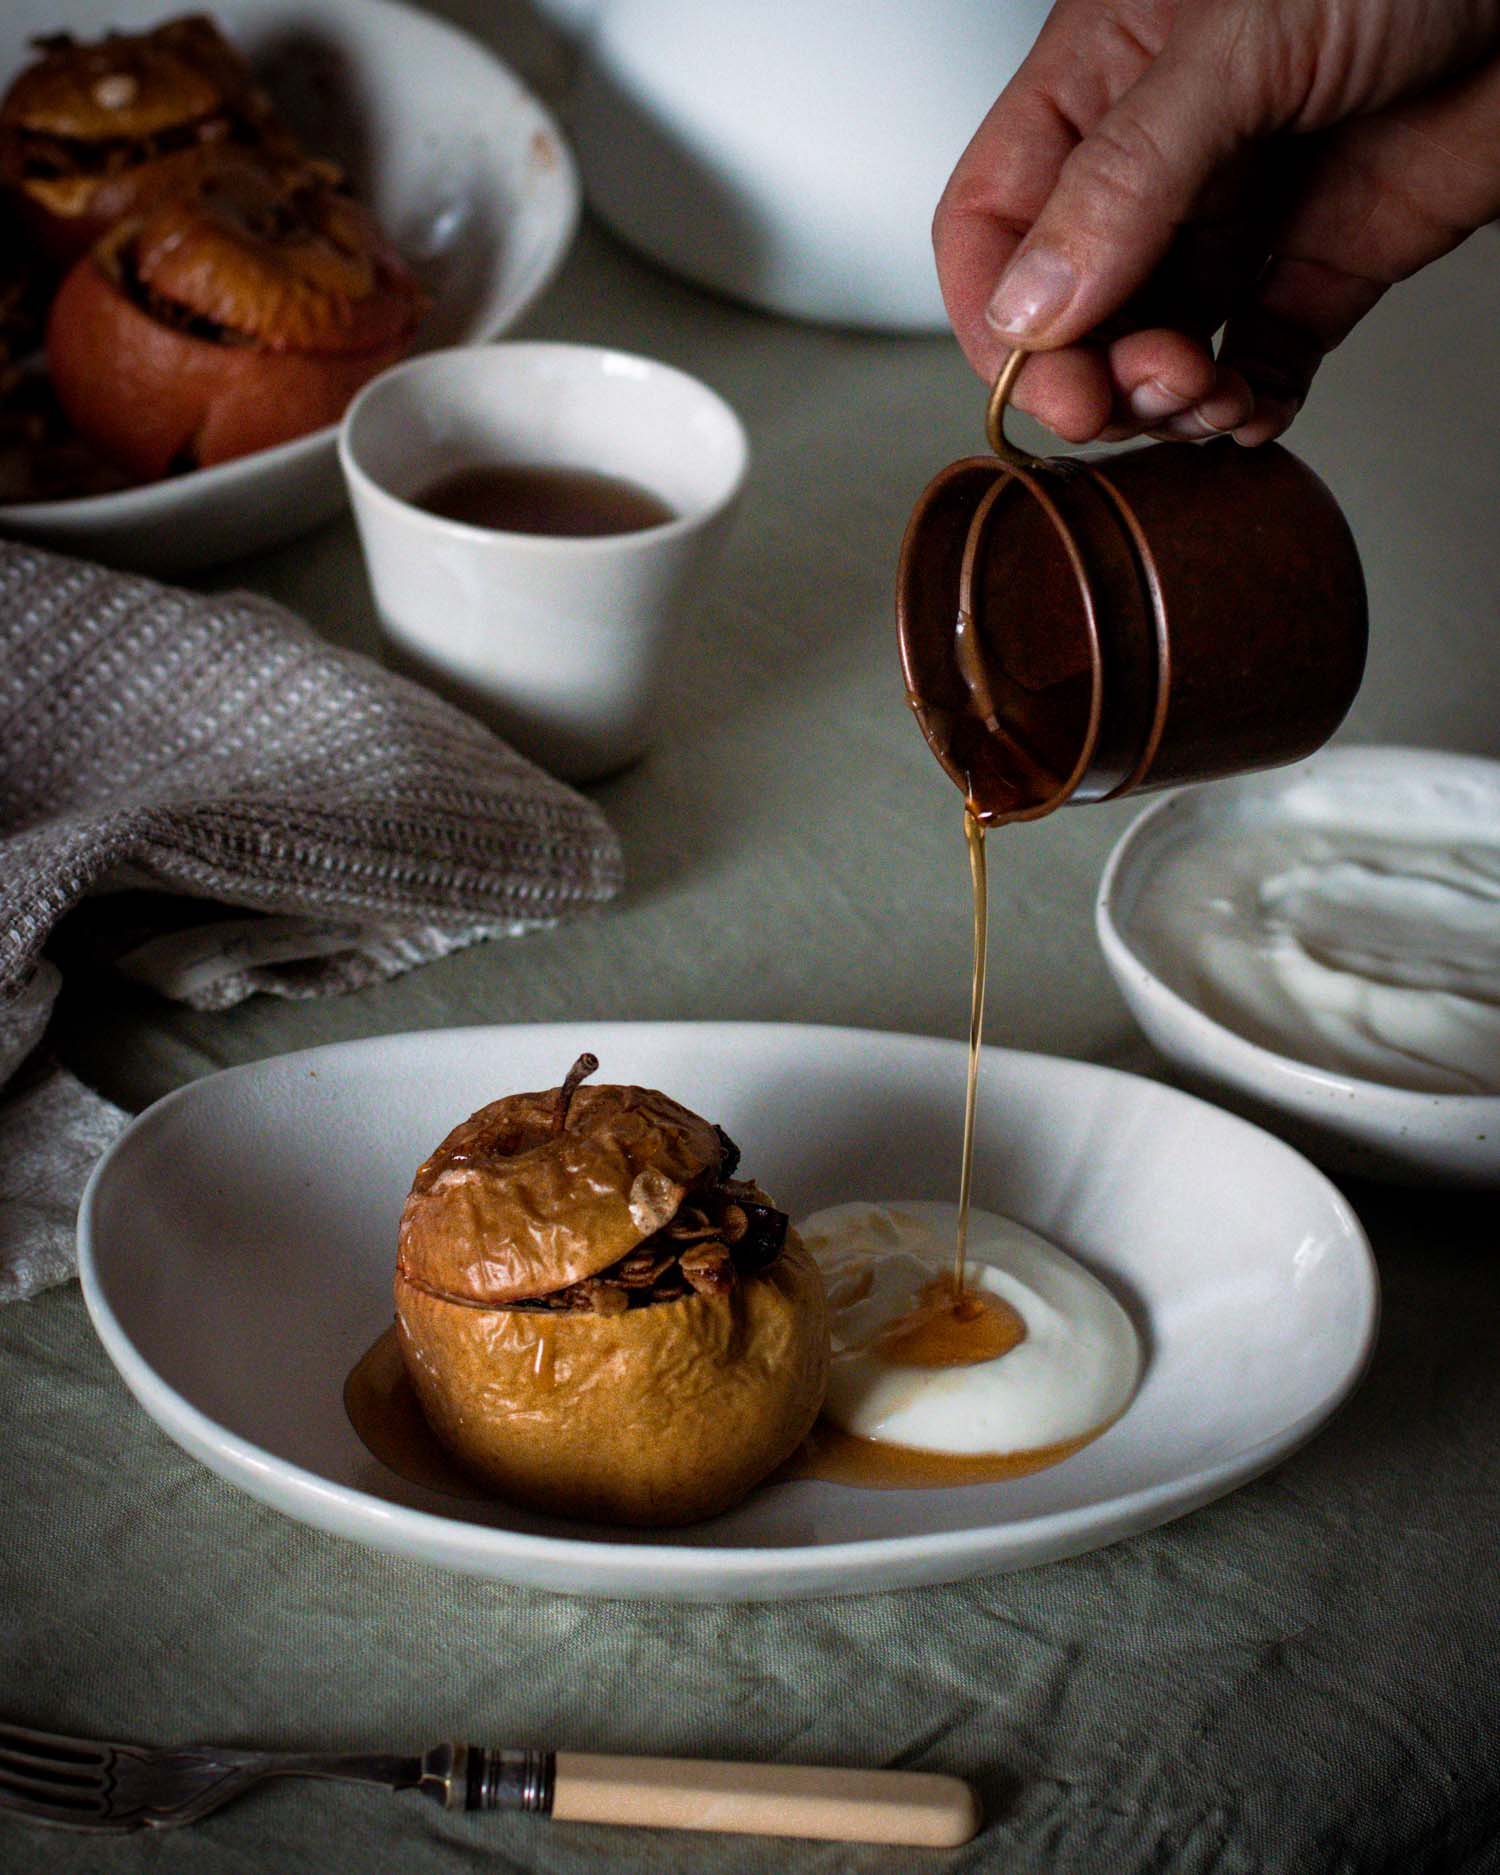 Pouring maple syrup over baked apples in a handmade ceramic bowl